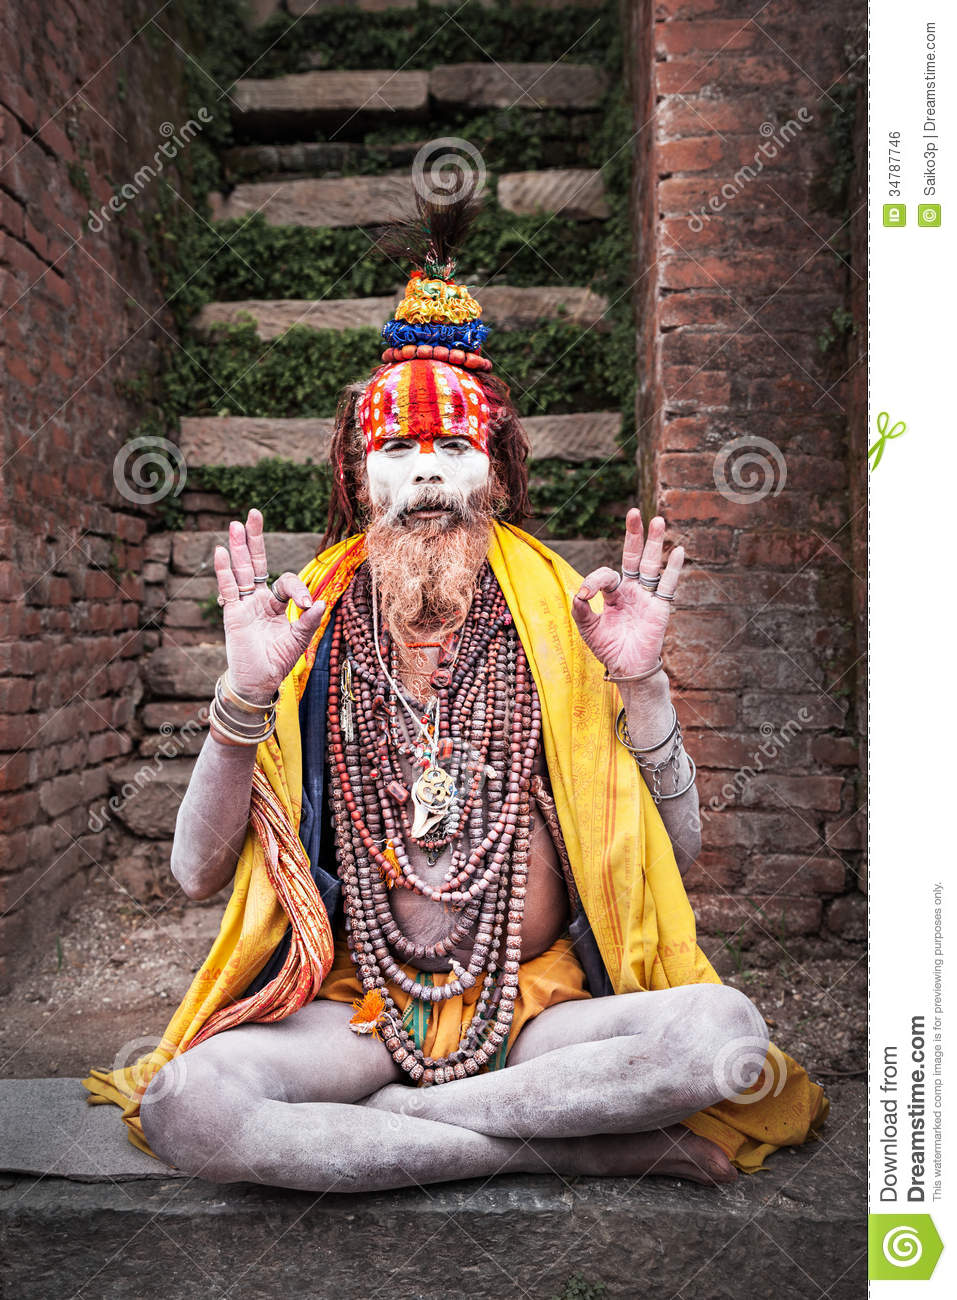 Arresting Sadhus Portrait Photography Religious Photography: Sadhu At Pashupatinath Temple Editorial Photo